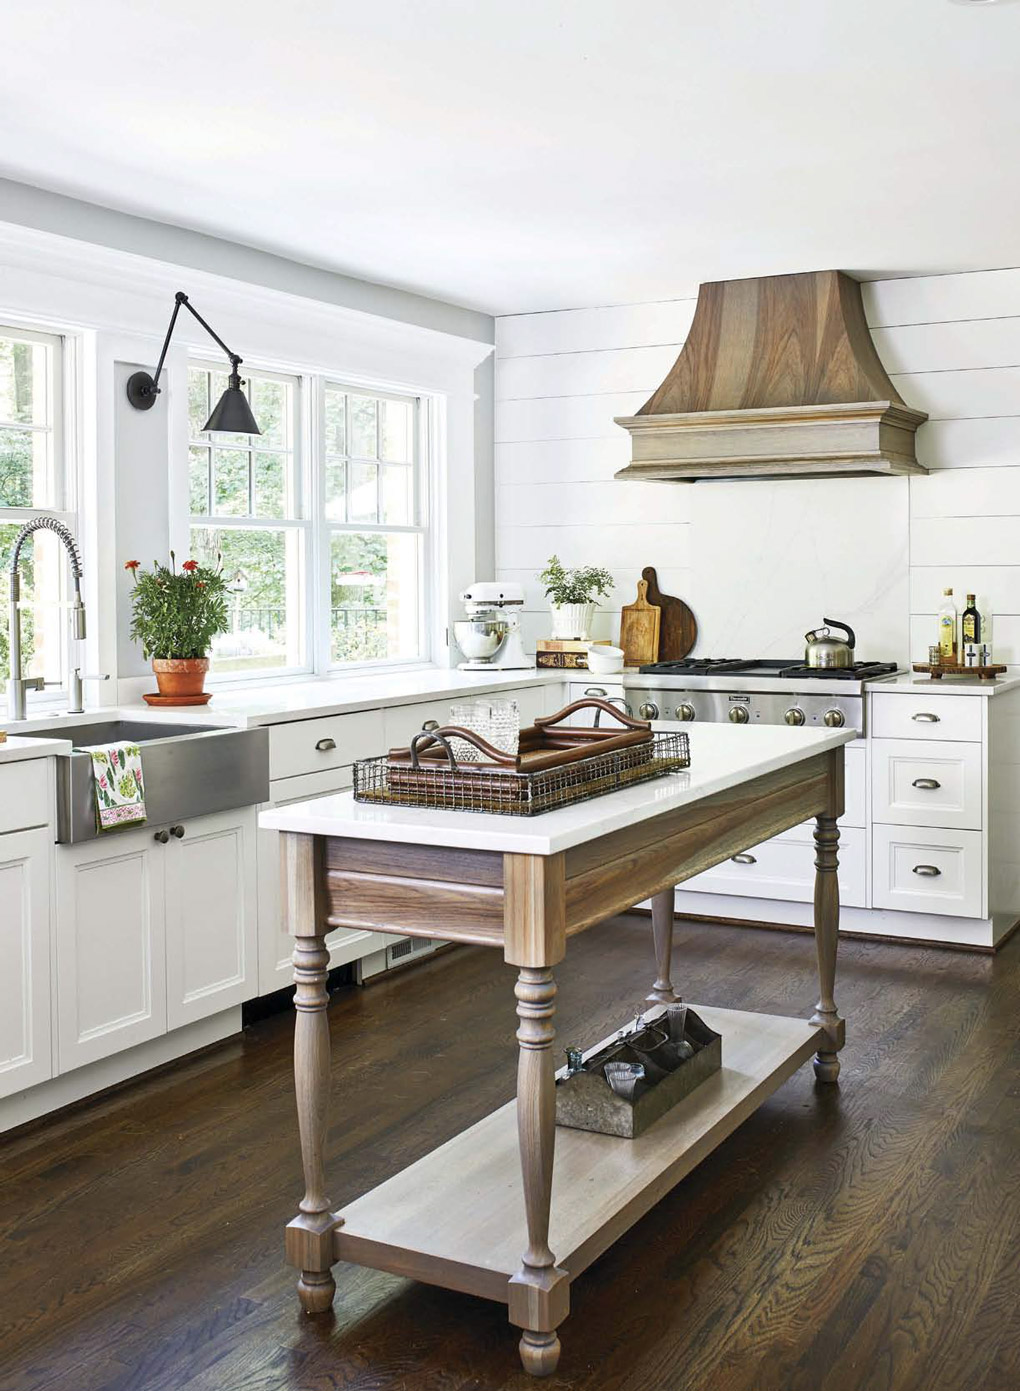 Custom designed island with turned wooden legs and all white kitchen counter and cabinetry in the background.